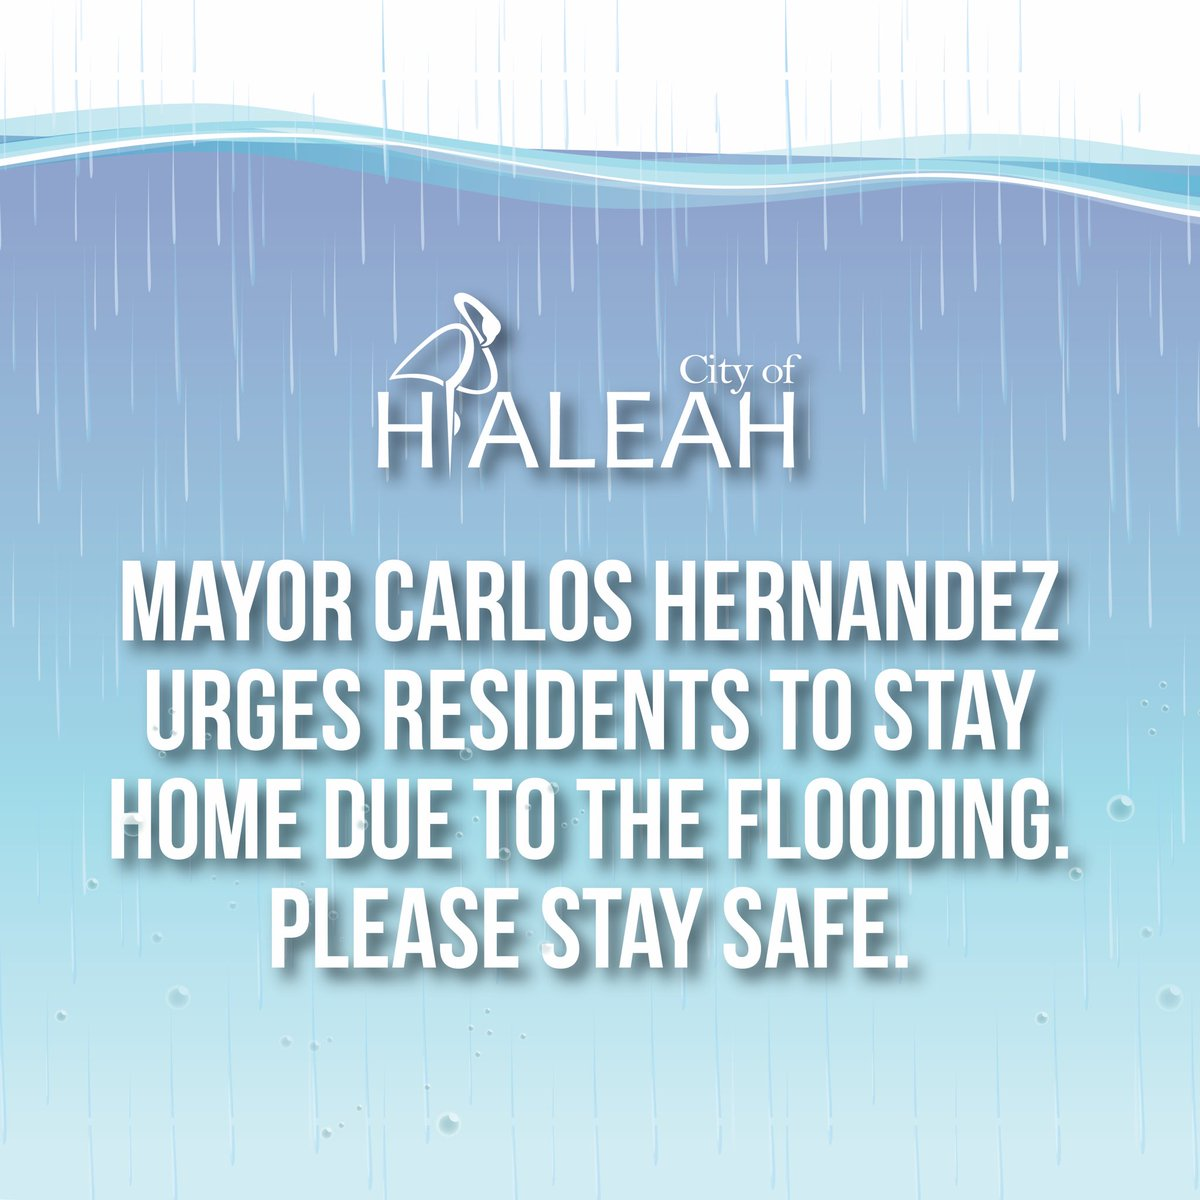 Mayor Carlos Hernandez Urges Residents to Stay Home Due to Flooding. Please Stay Safe. <br>http://pic.twitter.com/36CYLhF2by